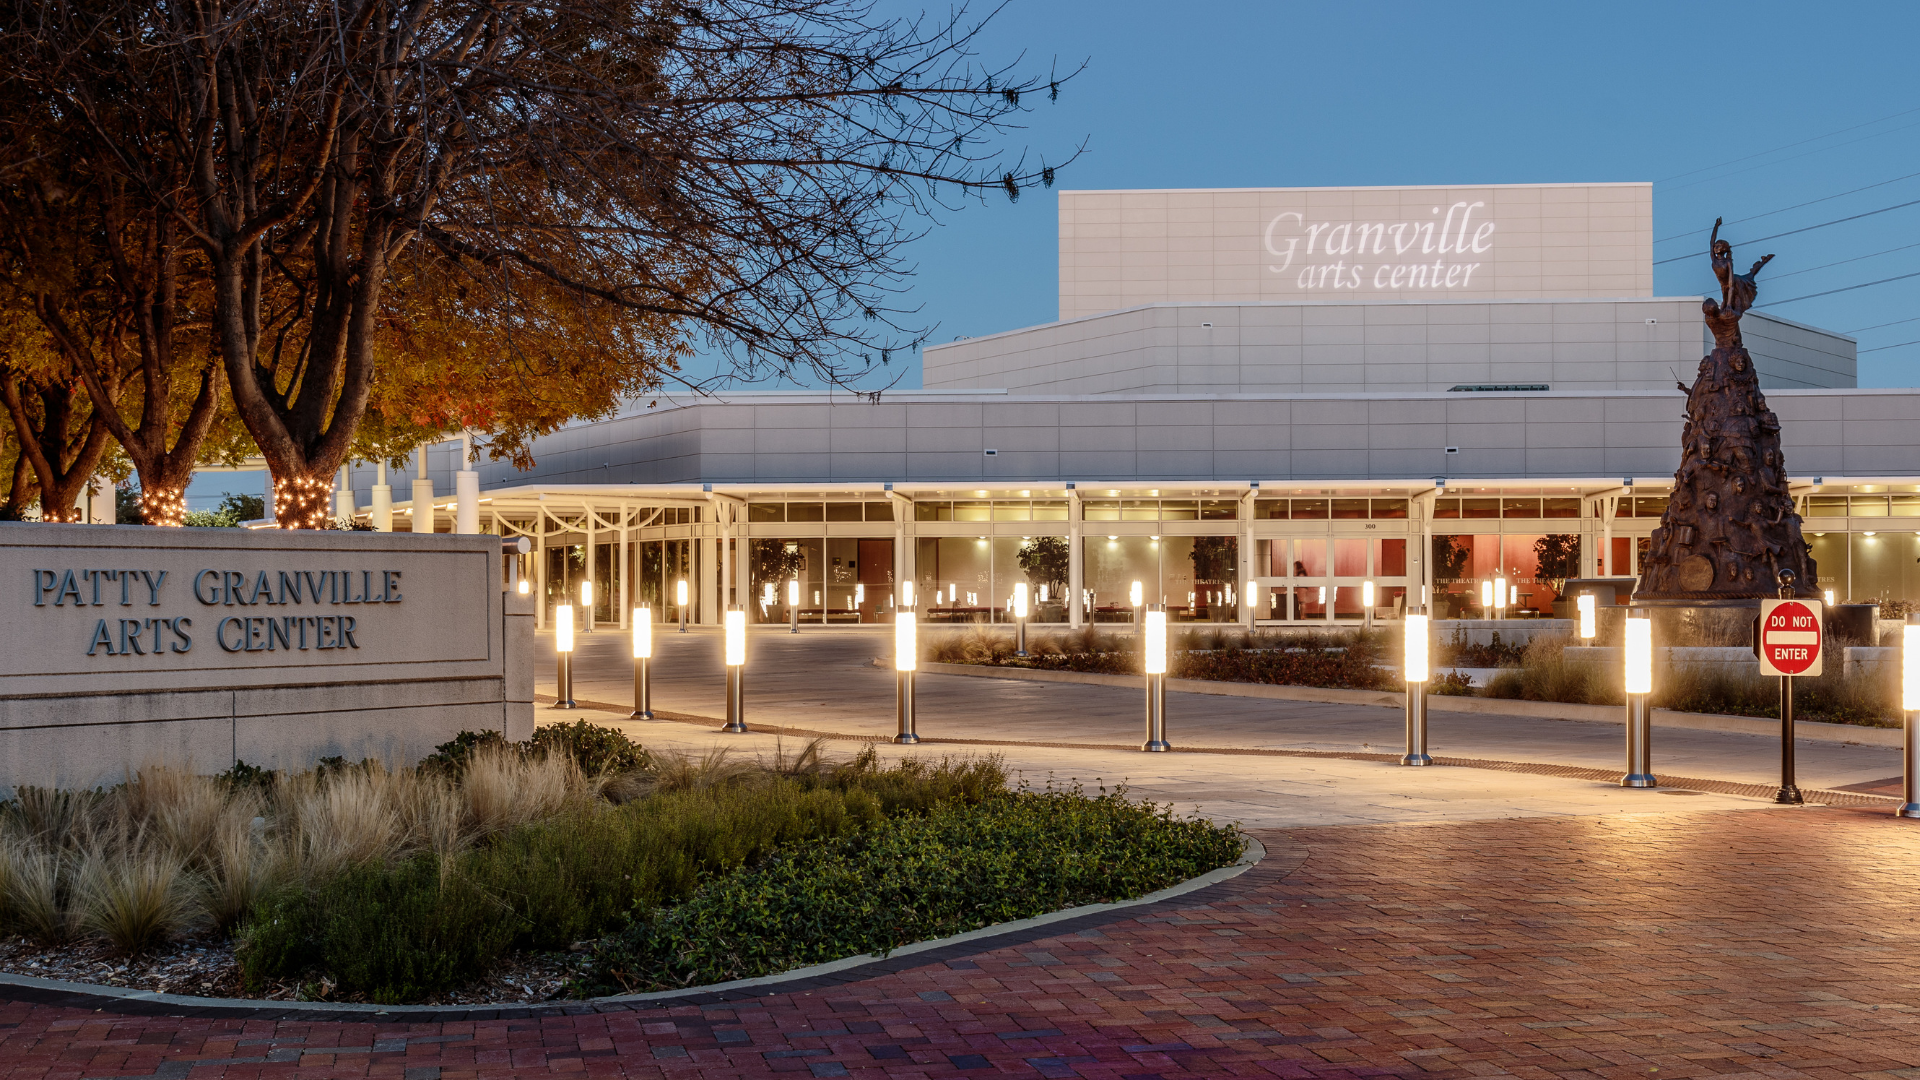 The exterior of the Granville Arts Center at dusk